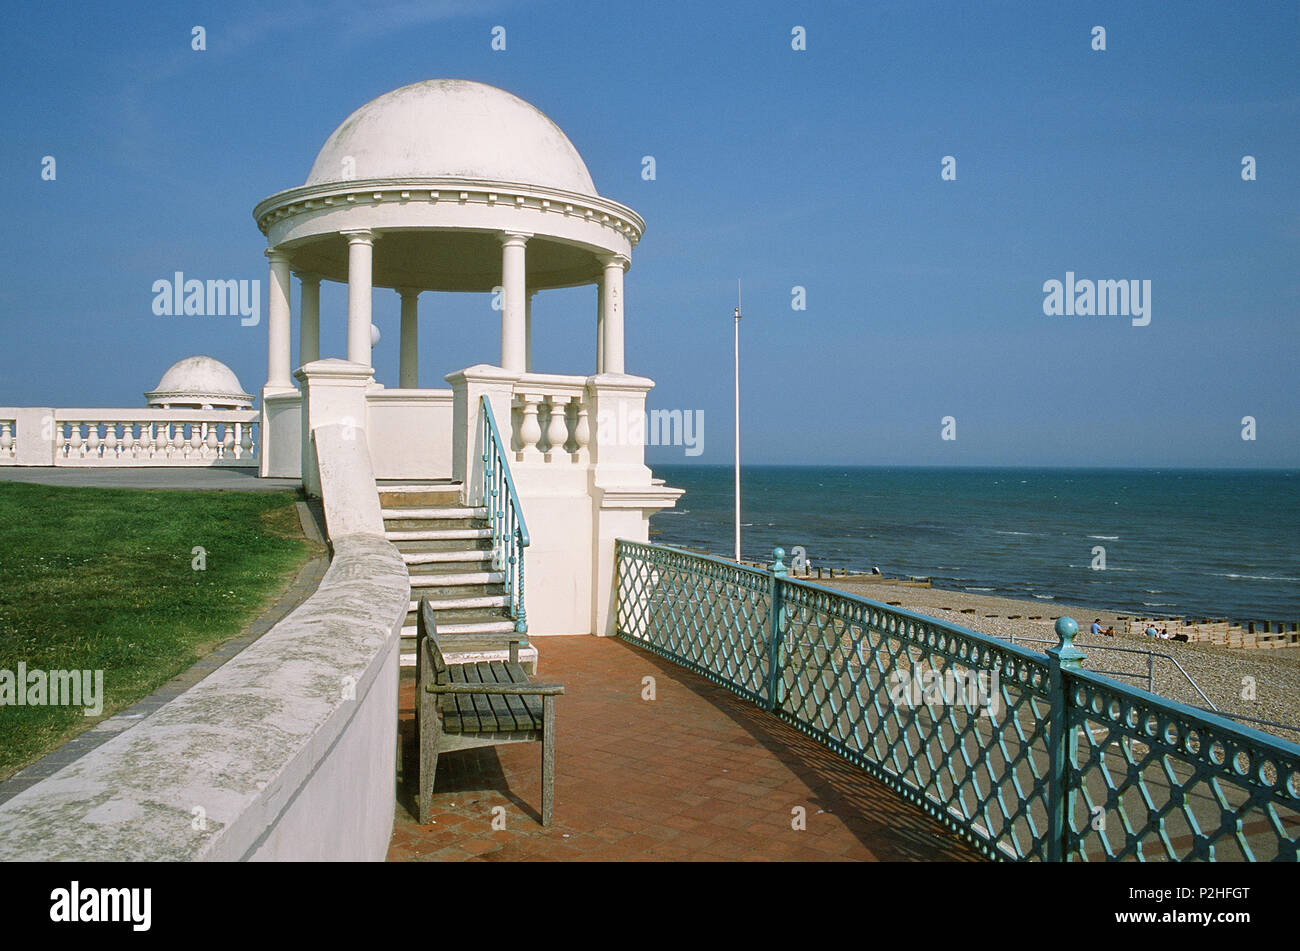 Cupola on the seafront at Bexhill-On-Sea, East Sussex UK, on the South Coast - Stock Image